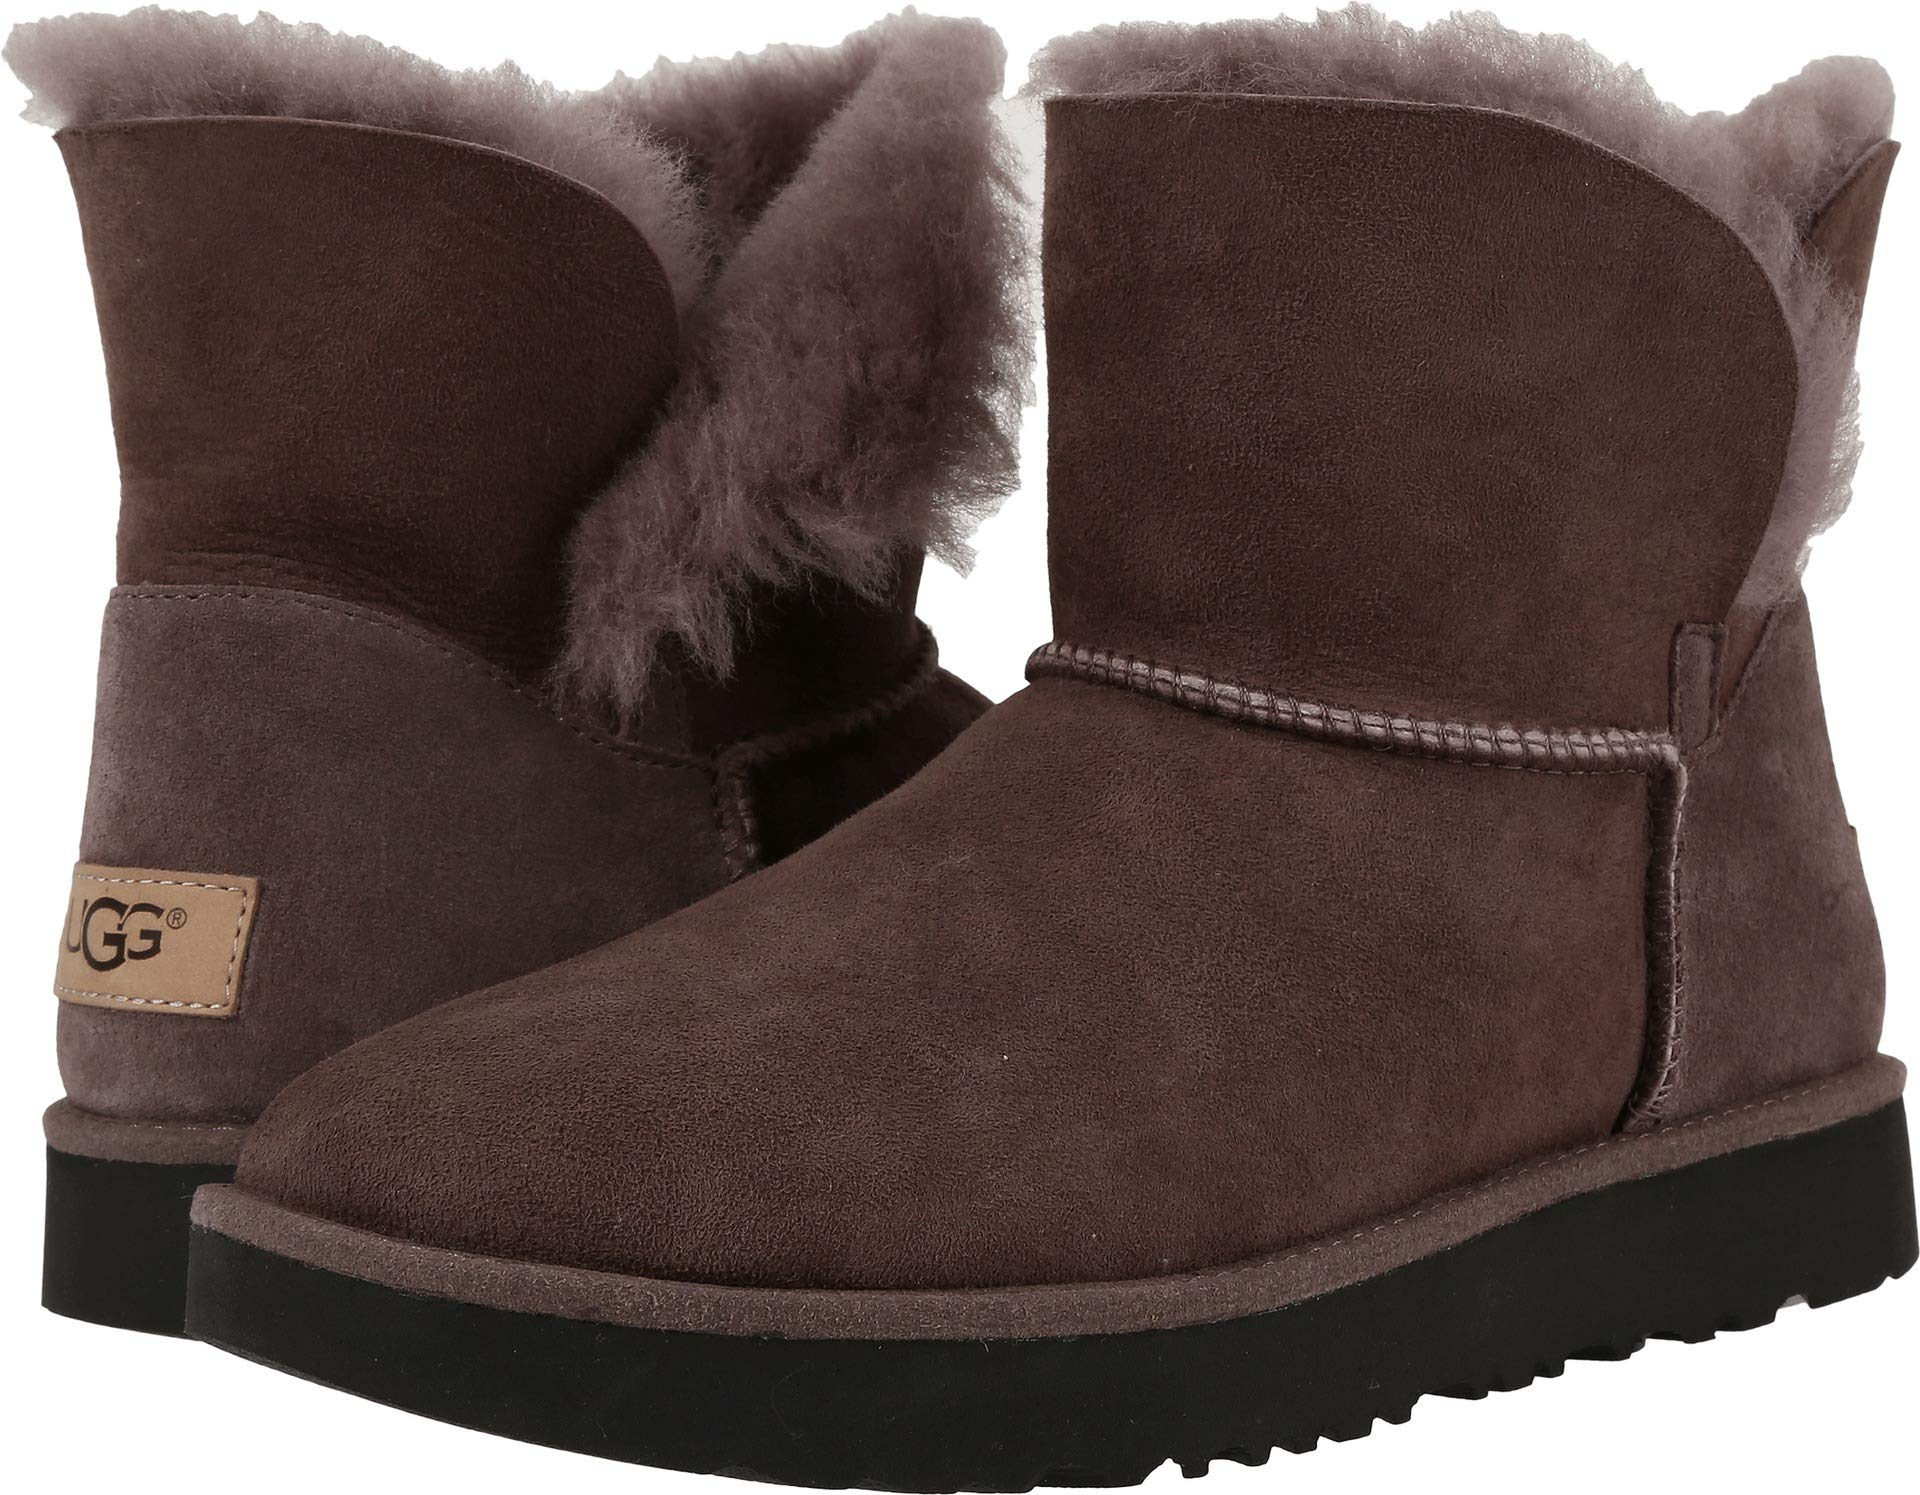 UGG Women's Classic Cuff Mini Winter Boot, Stormy Grey, 7 M US